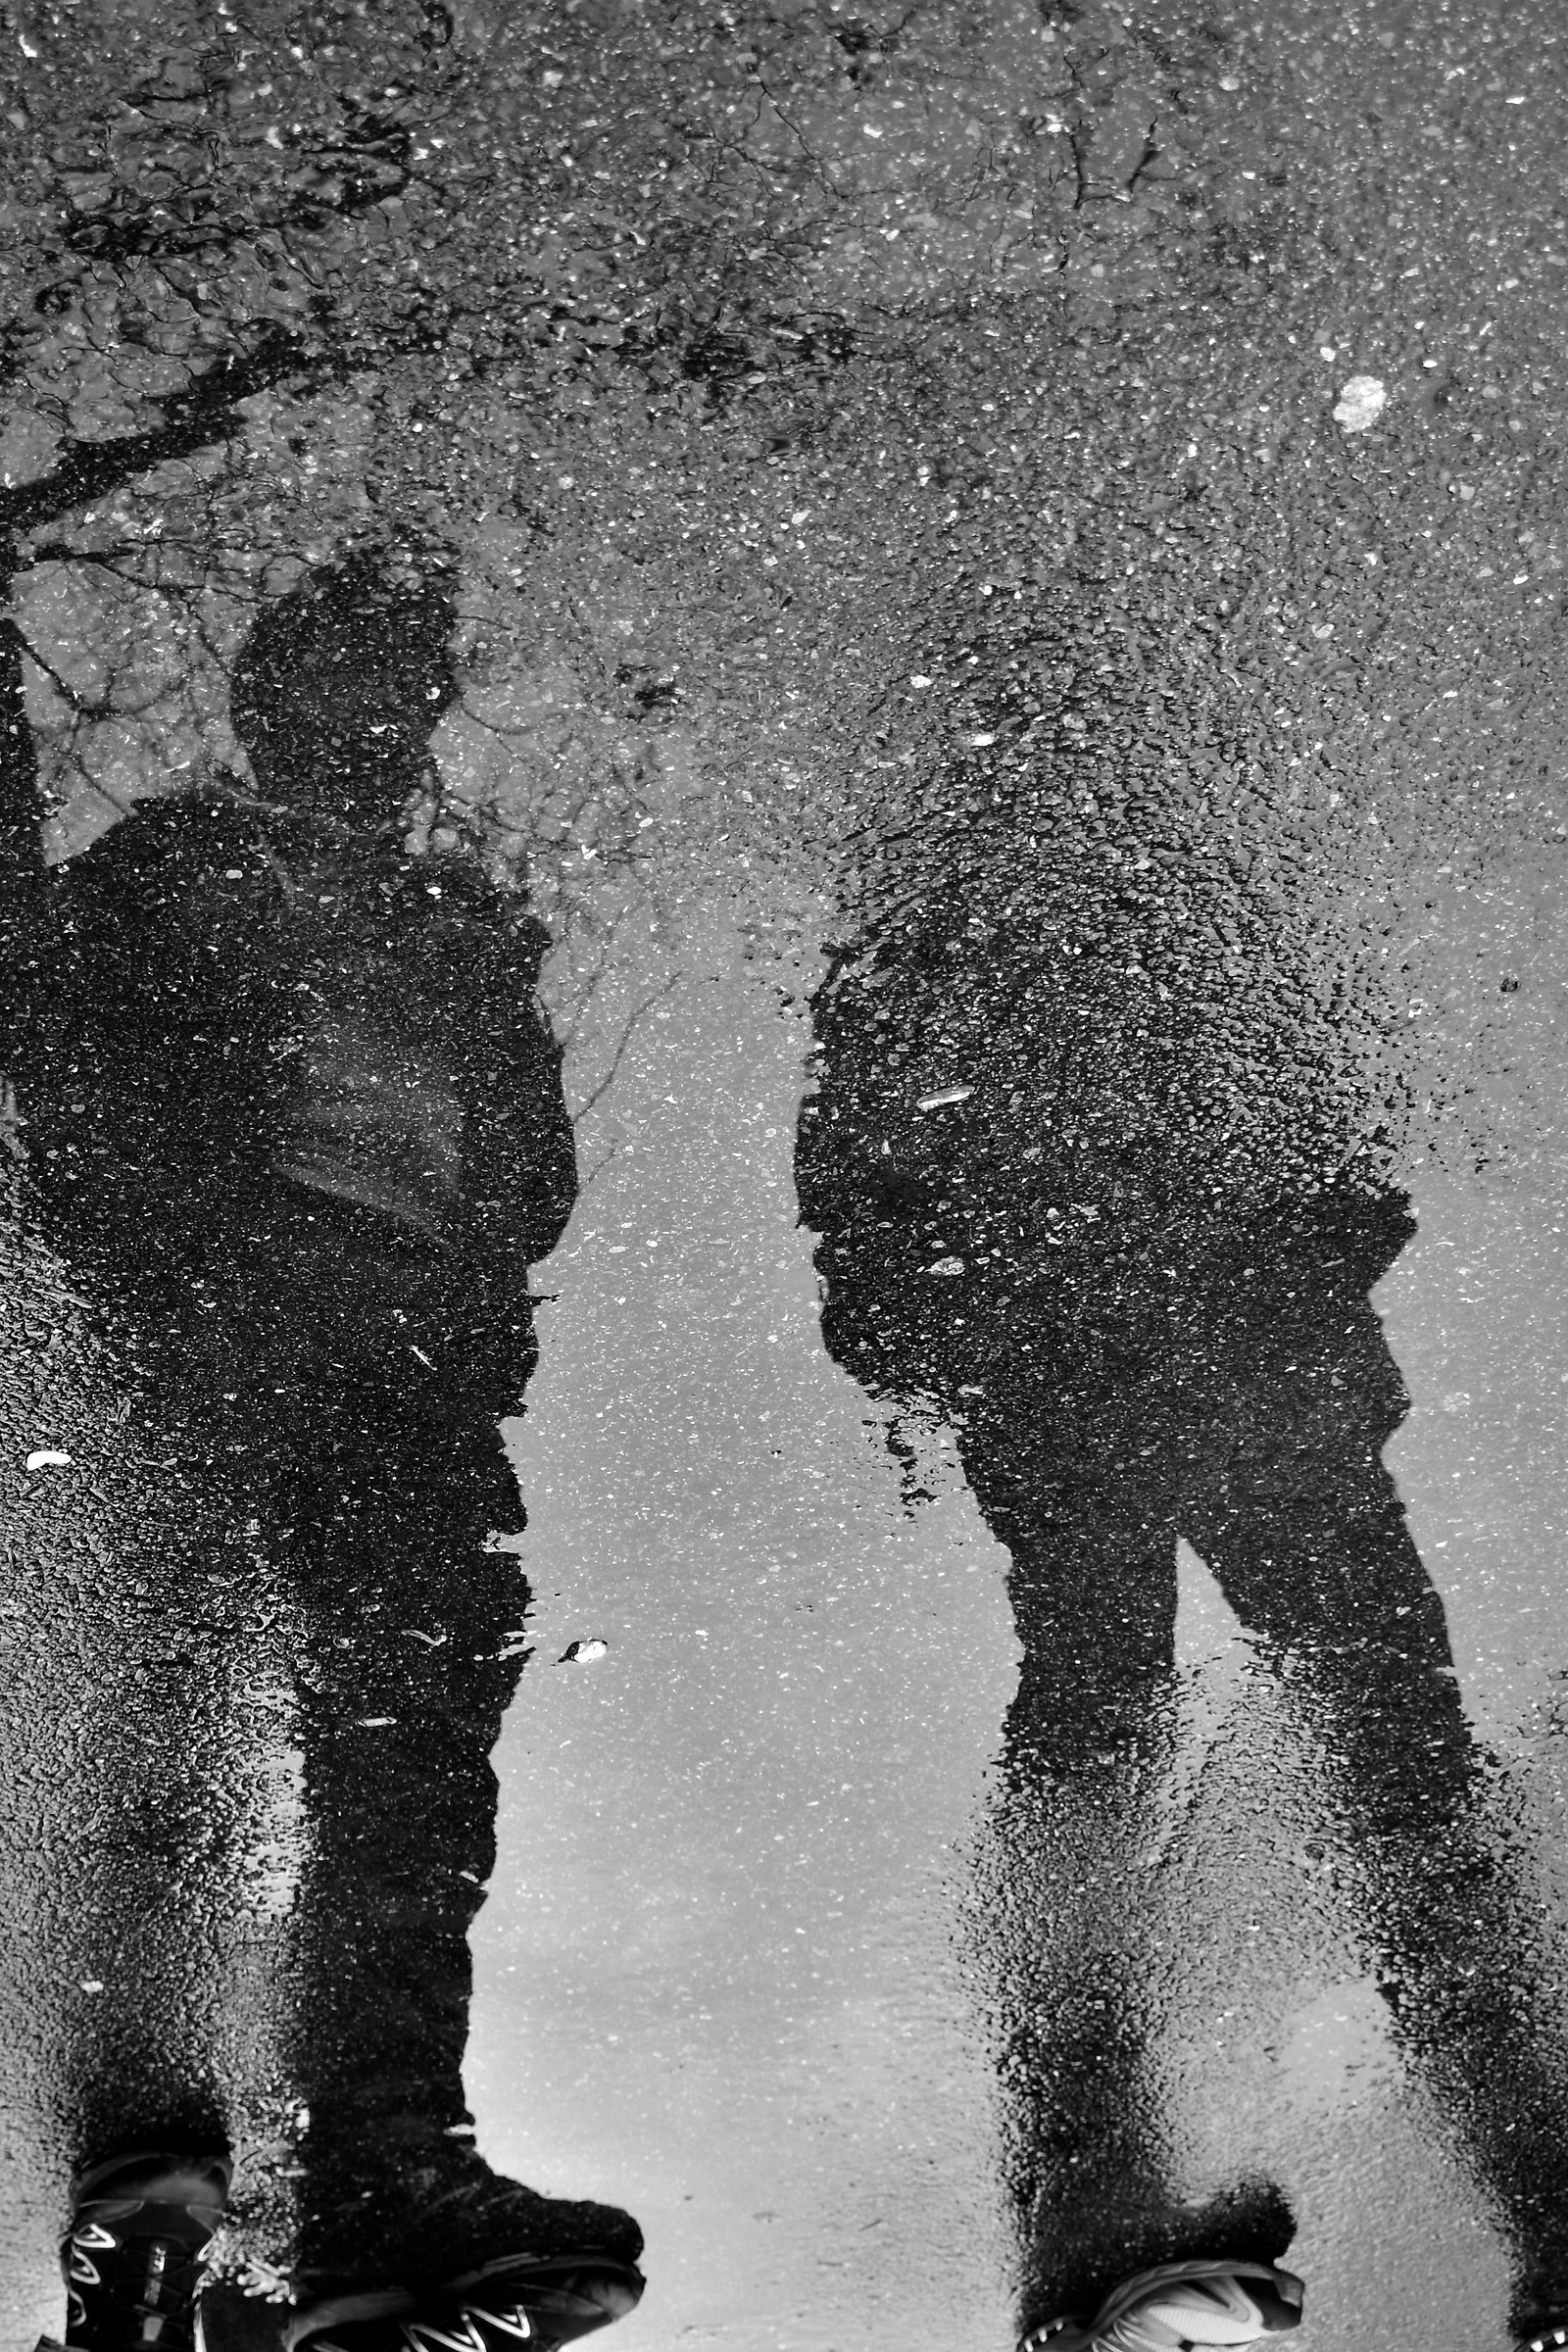 Reflected in the puddle...